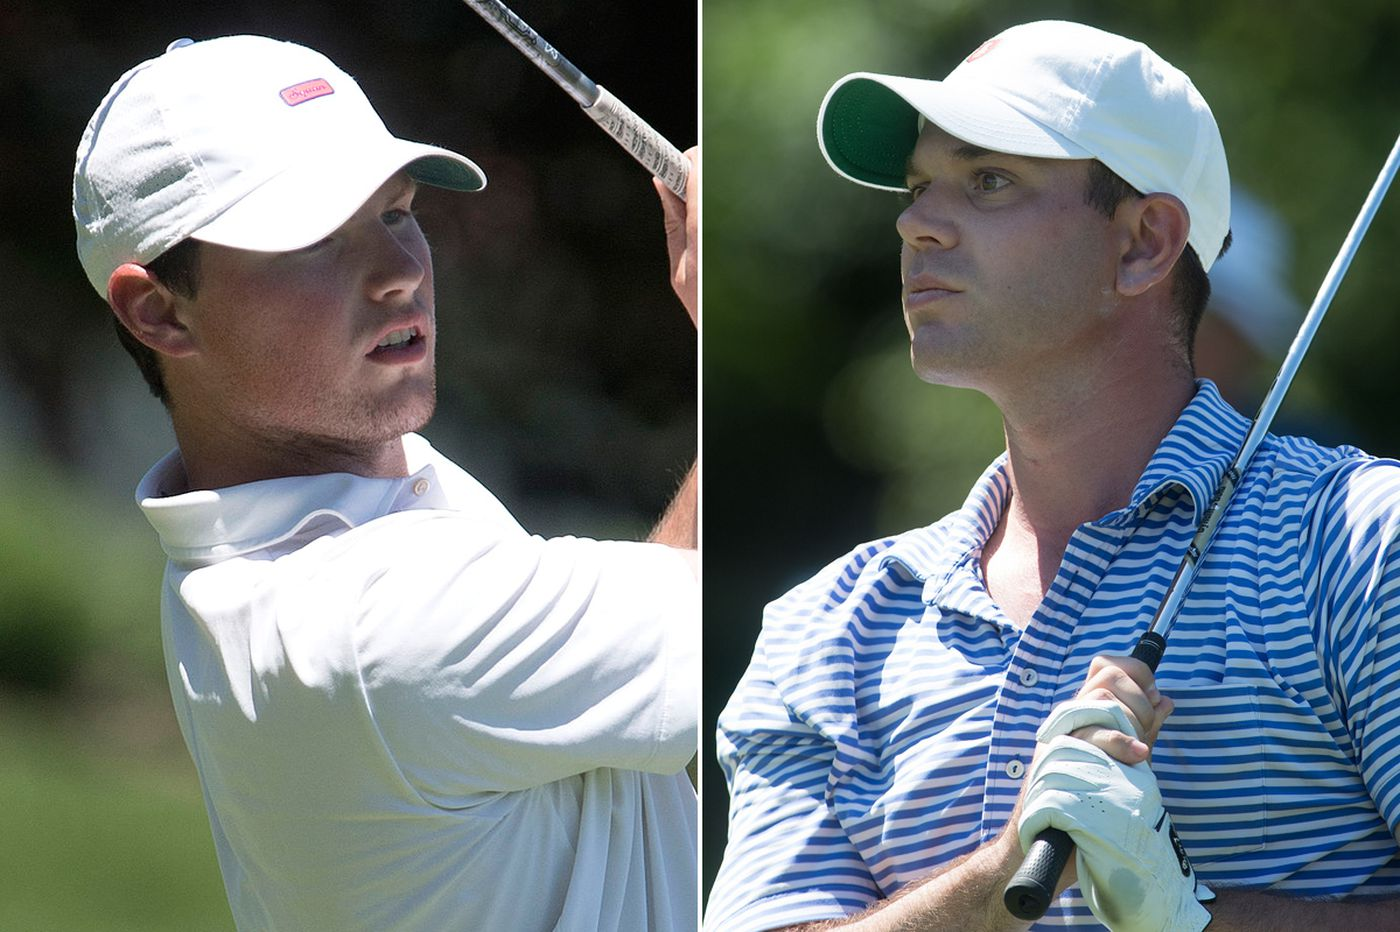 Andrew Mason, Jeremy Wall ready for Philadelphia Amateur title duel